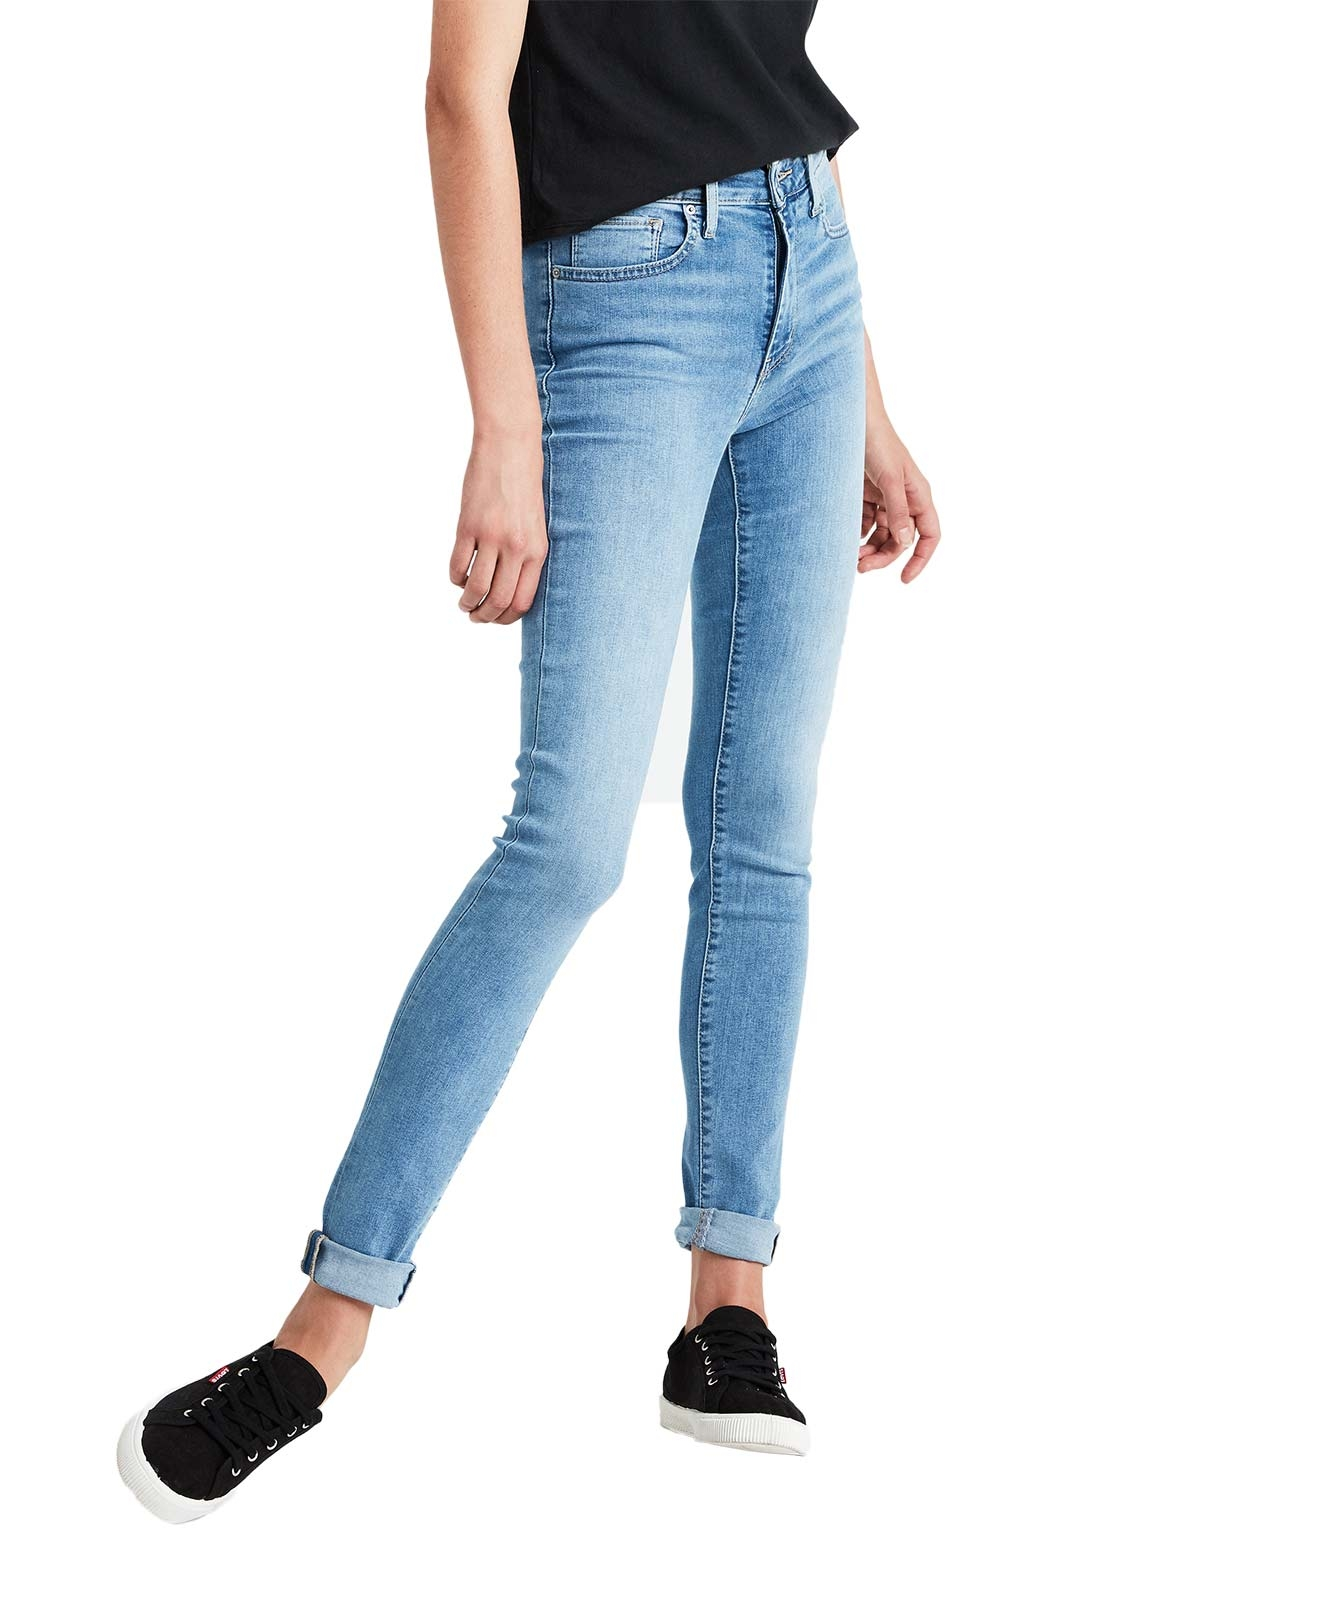 Hosen - Levis 721 High Rise Skinny Jeans in hellblauer Waschung  - Onlineshop Jeans Meile